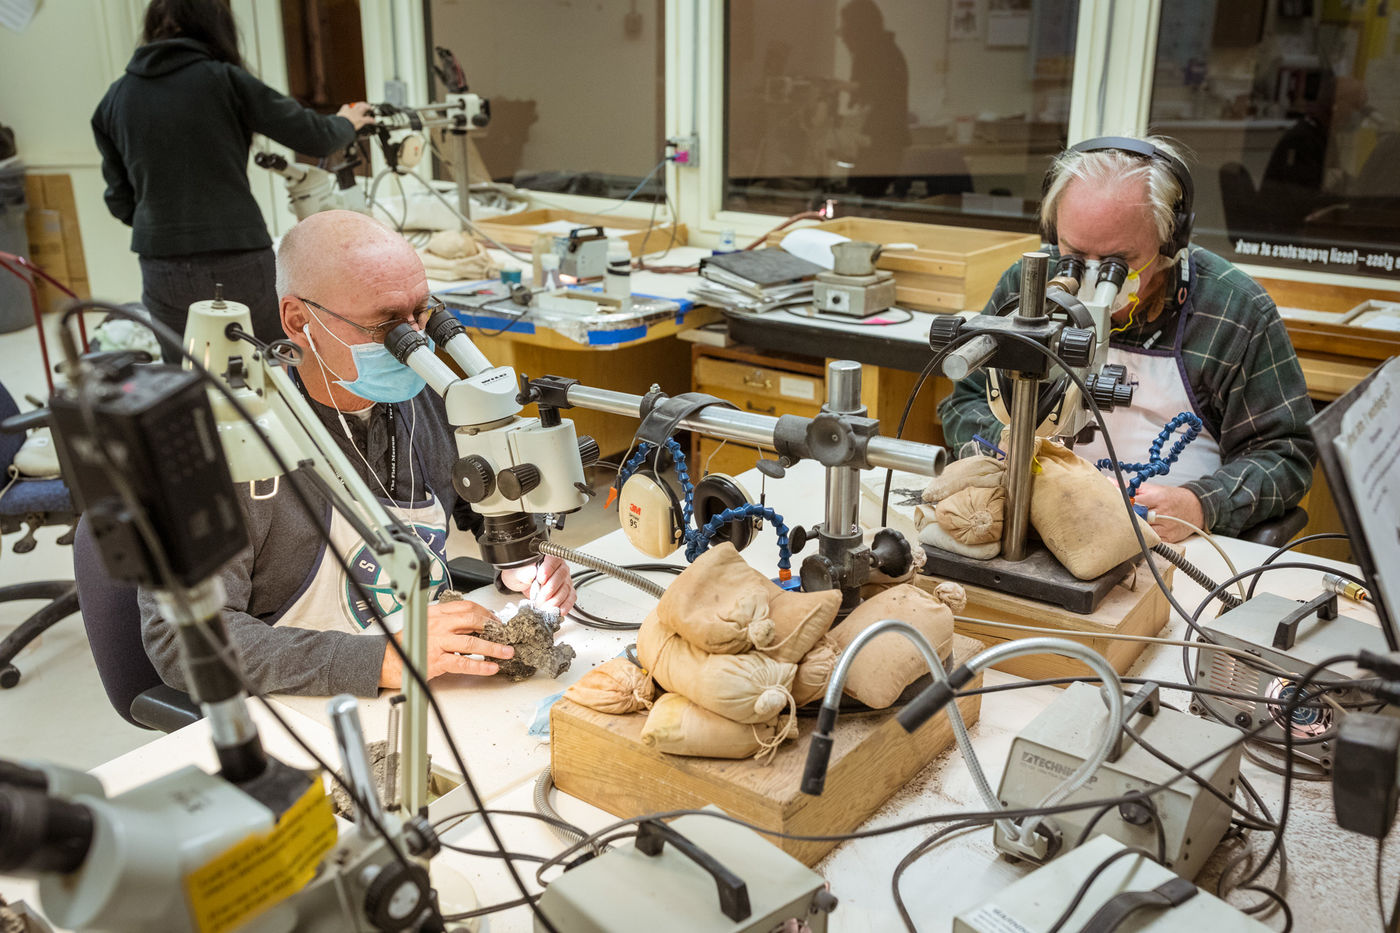 Two volunteers sit at a table and look into microscopes while they carve away at fossils. A woman in the background handles another microscope.